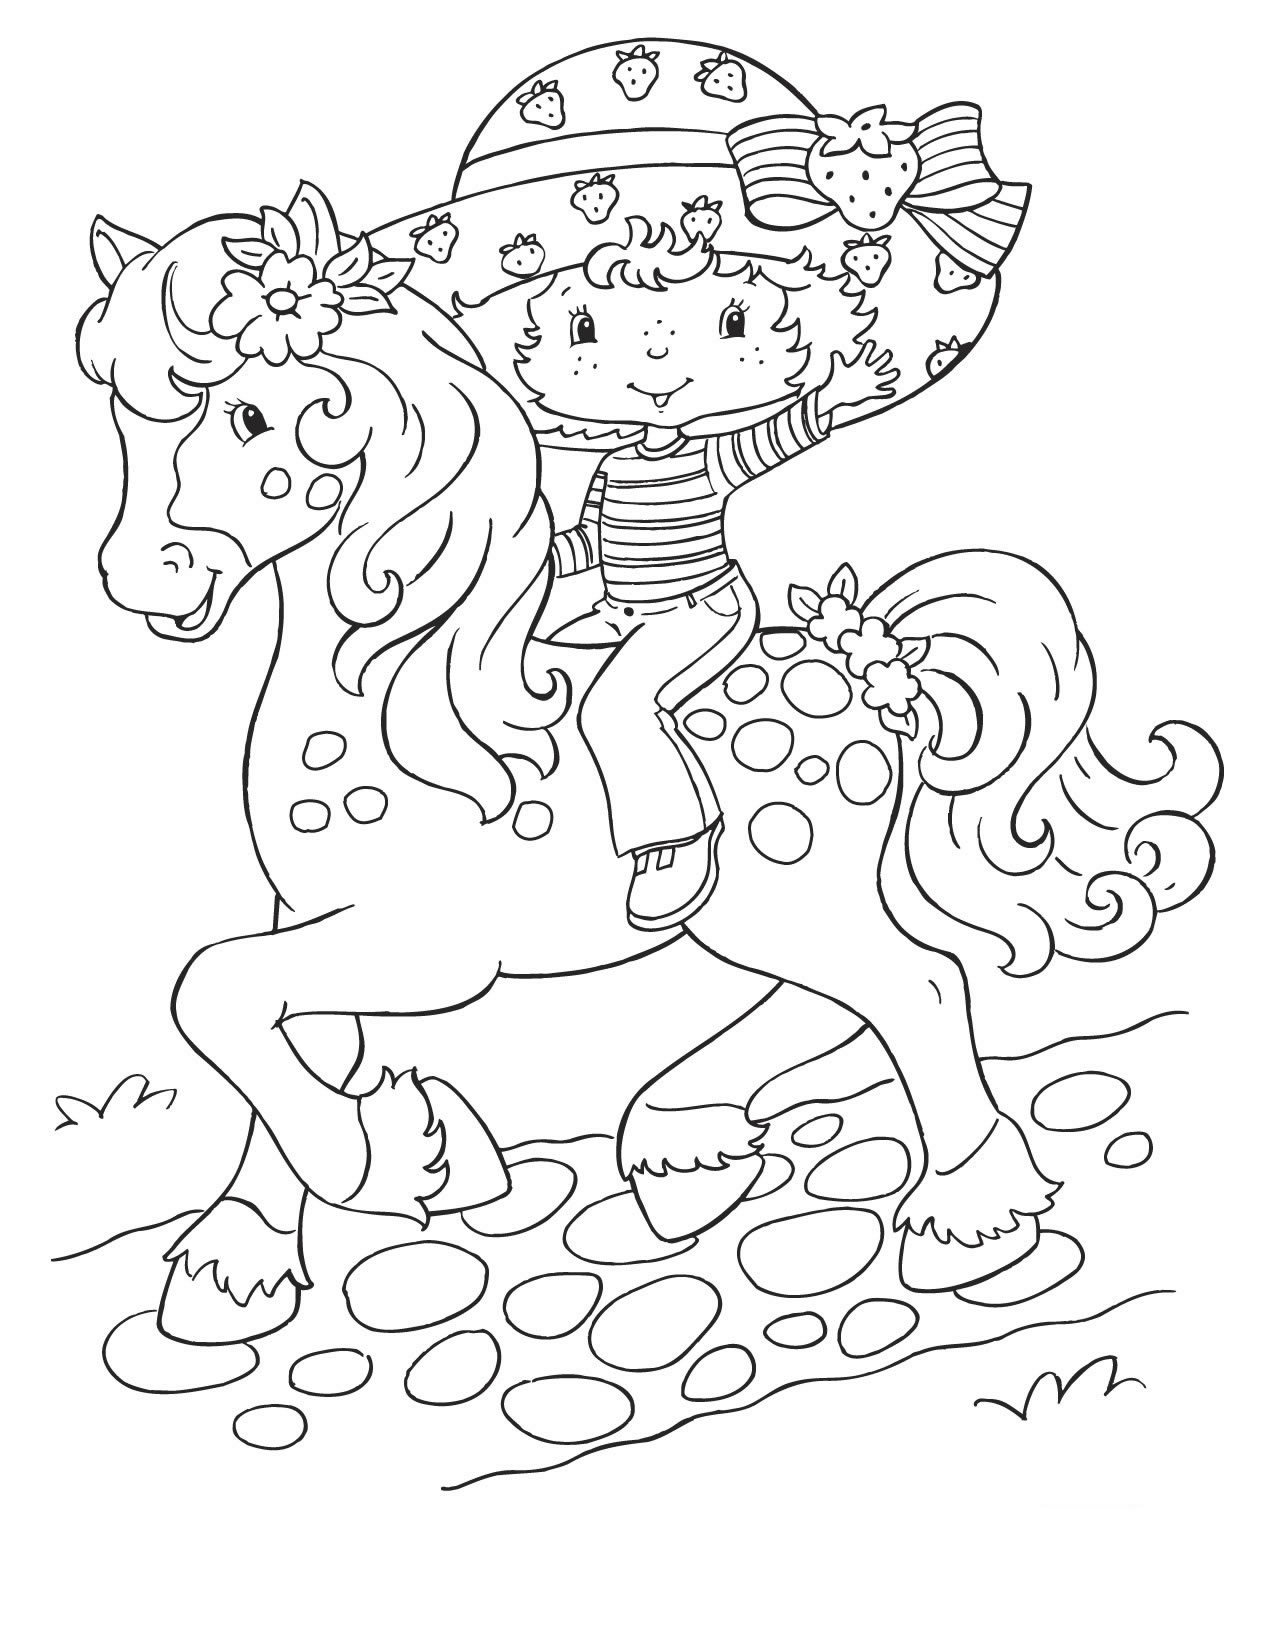 strawberry-shortcake coloring pages for kids,printable,coloring pages